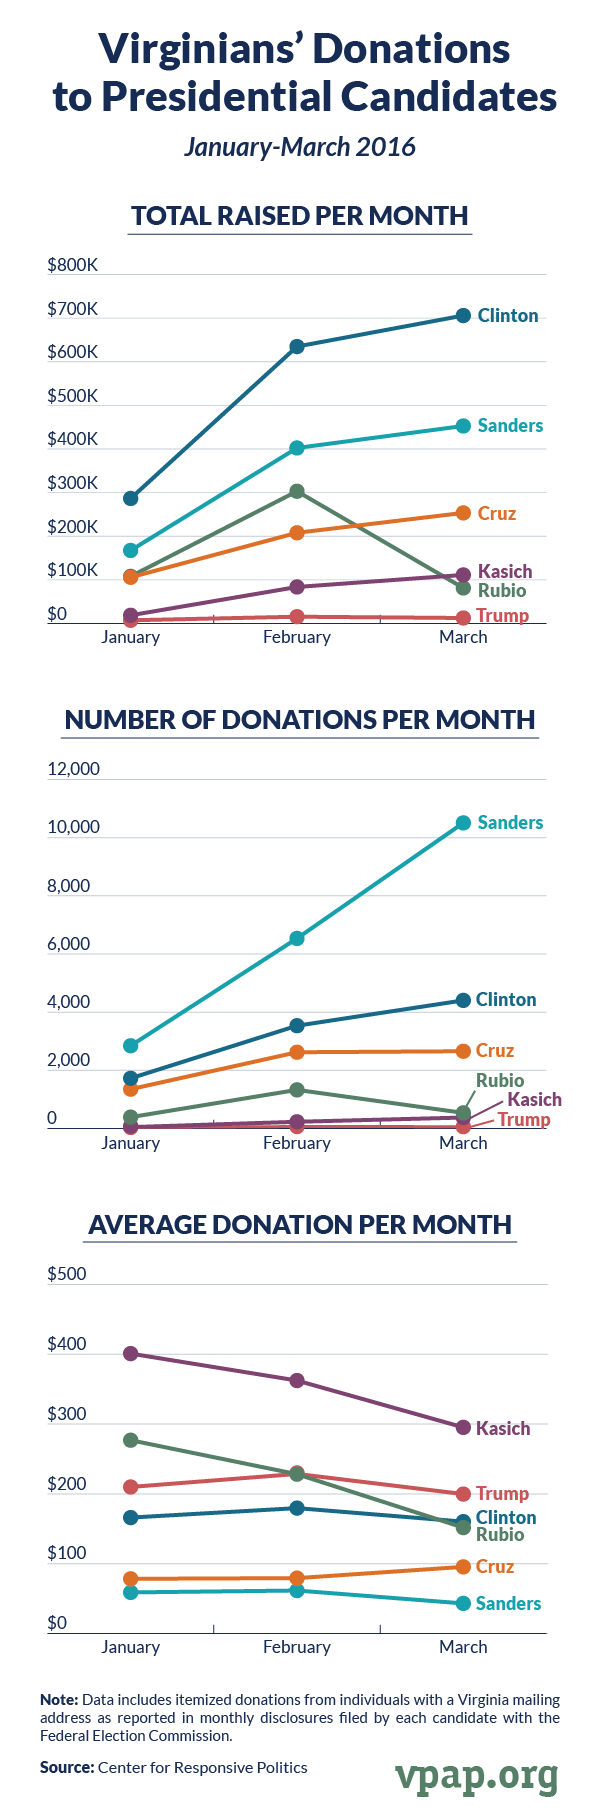 Virginians' Donations to Presidential Candidates, January-March